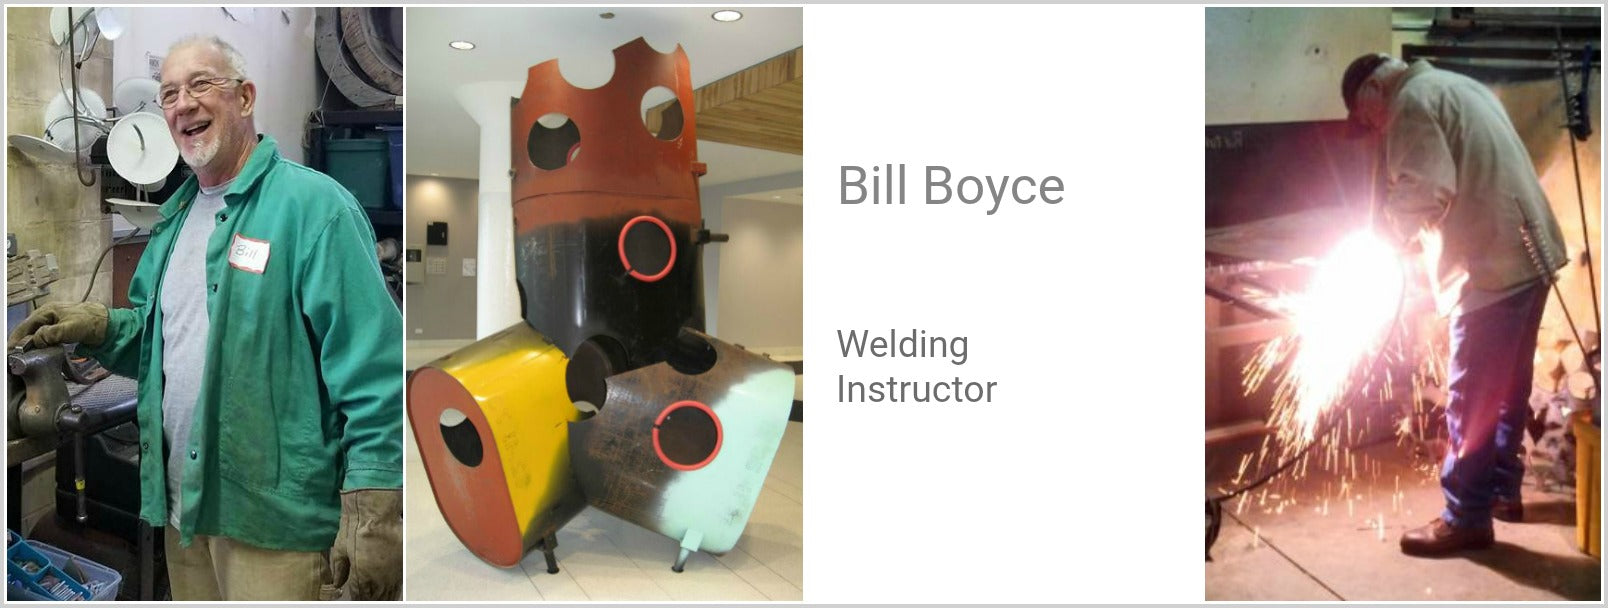 Bill Boyce Welding Instructor